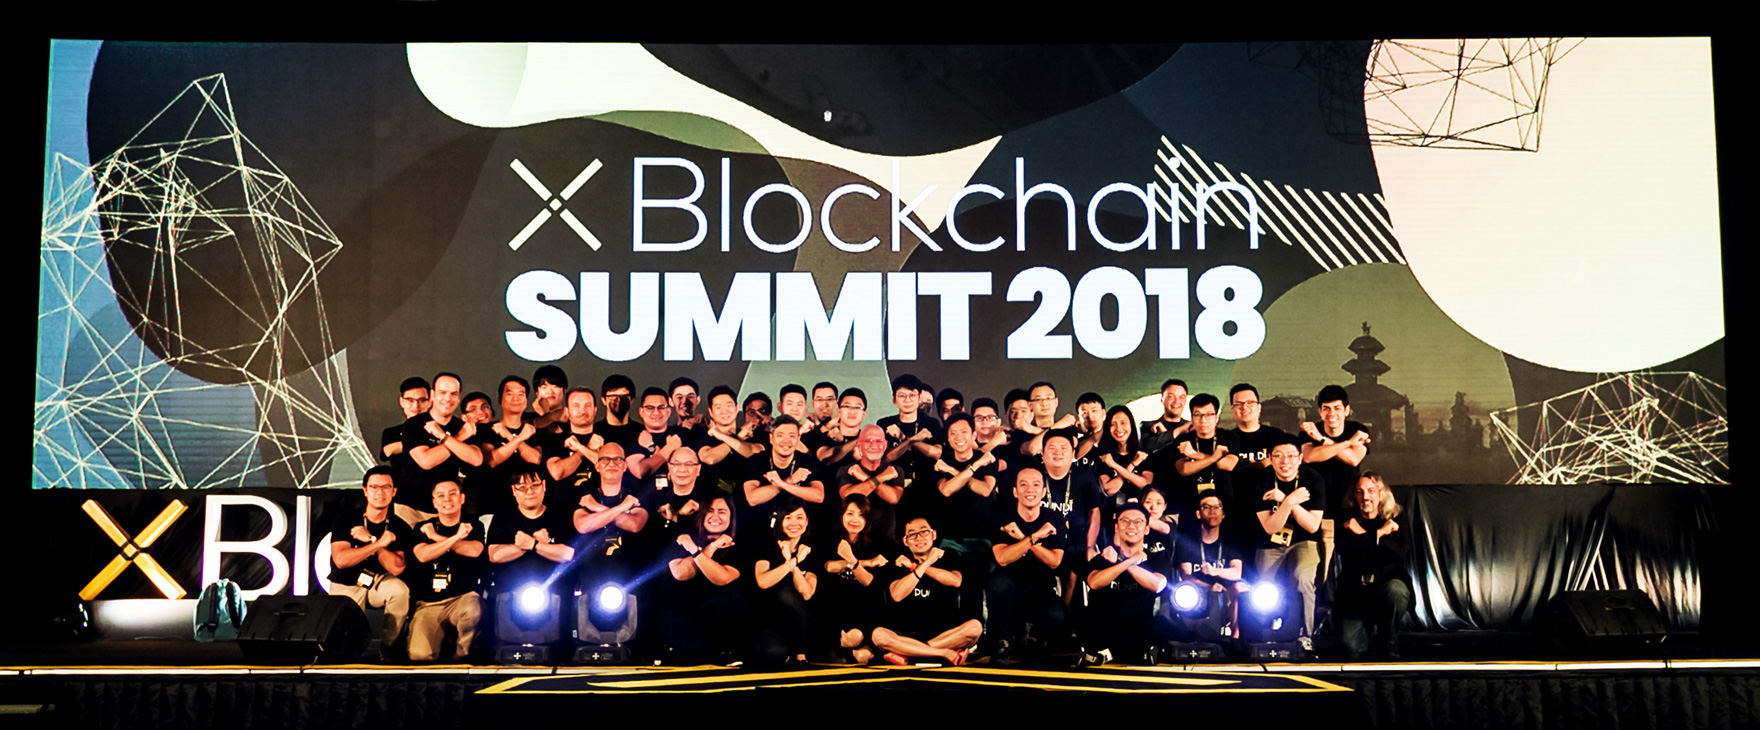 Pundi X team from X Blockchain Summit 2018